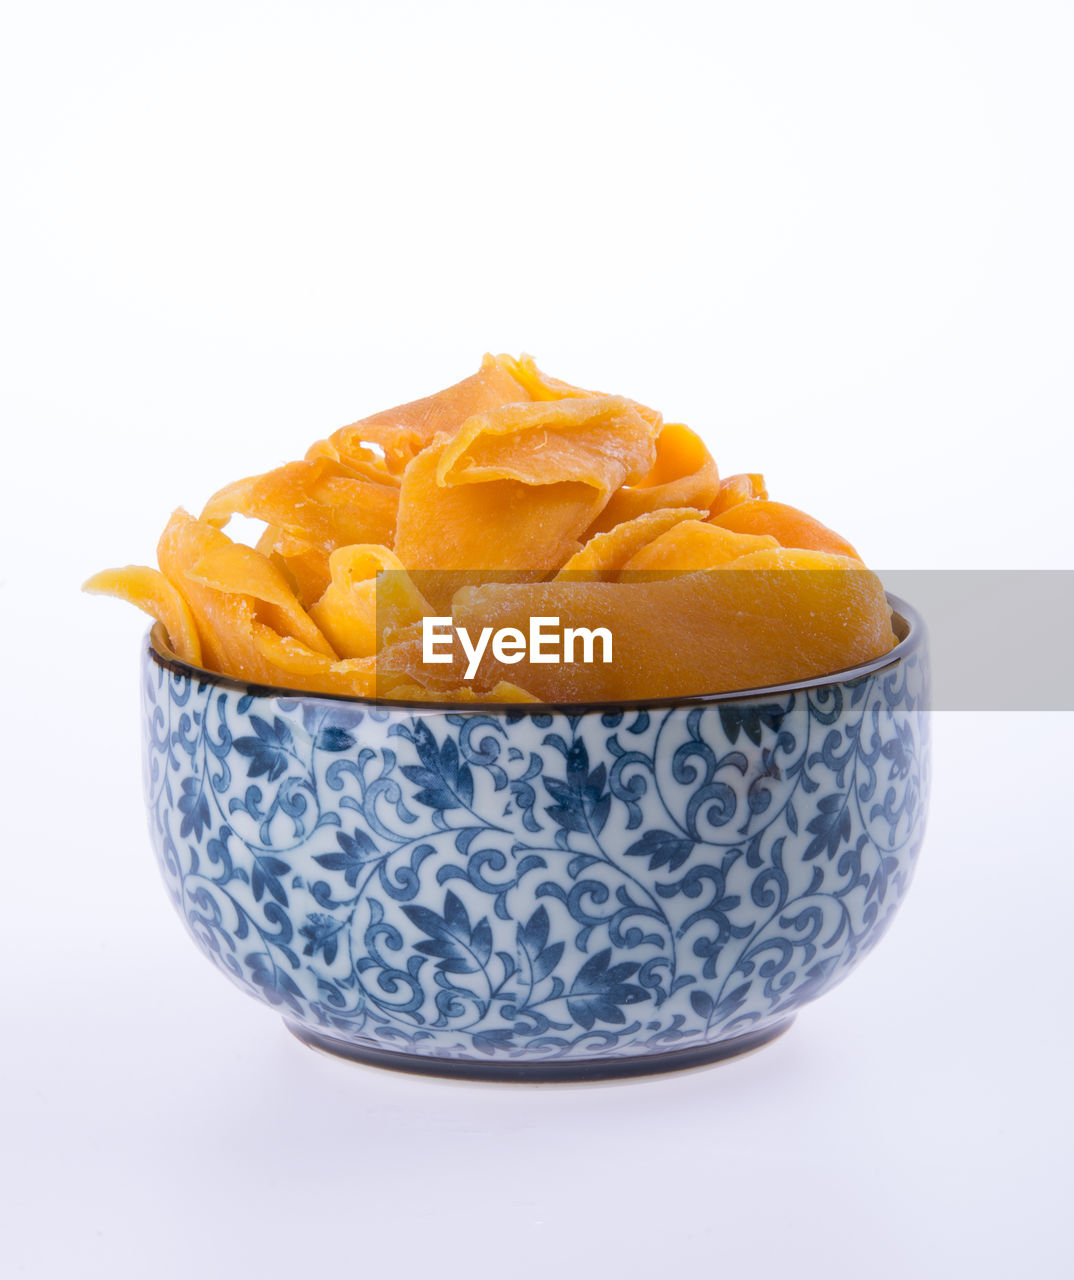 studio shot, food, freshness, bowl, white background, food and drink, close-up, indoors, still life, fruit, copy space, healthy eating, no people, orange color, wellbeing, citrus fruit, cut out, pattern, table, sweet food, orange, temptation